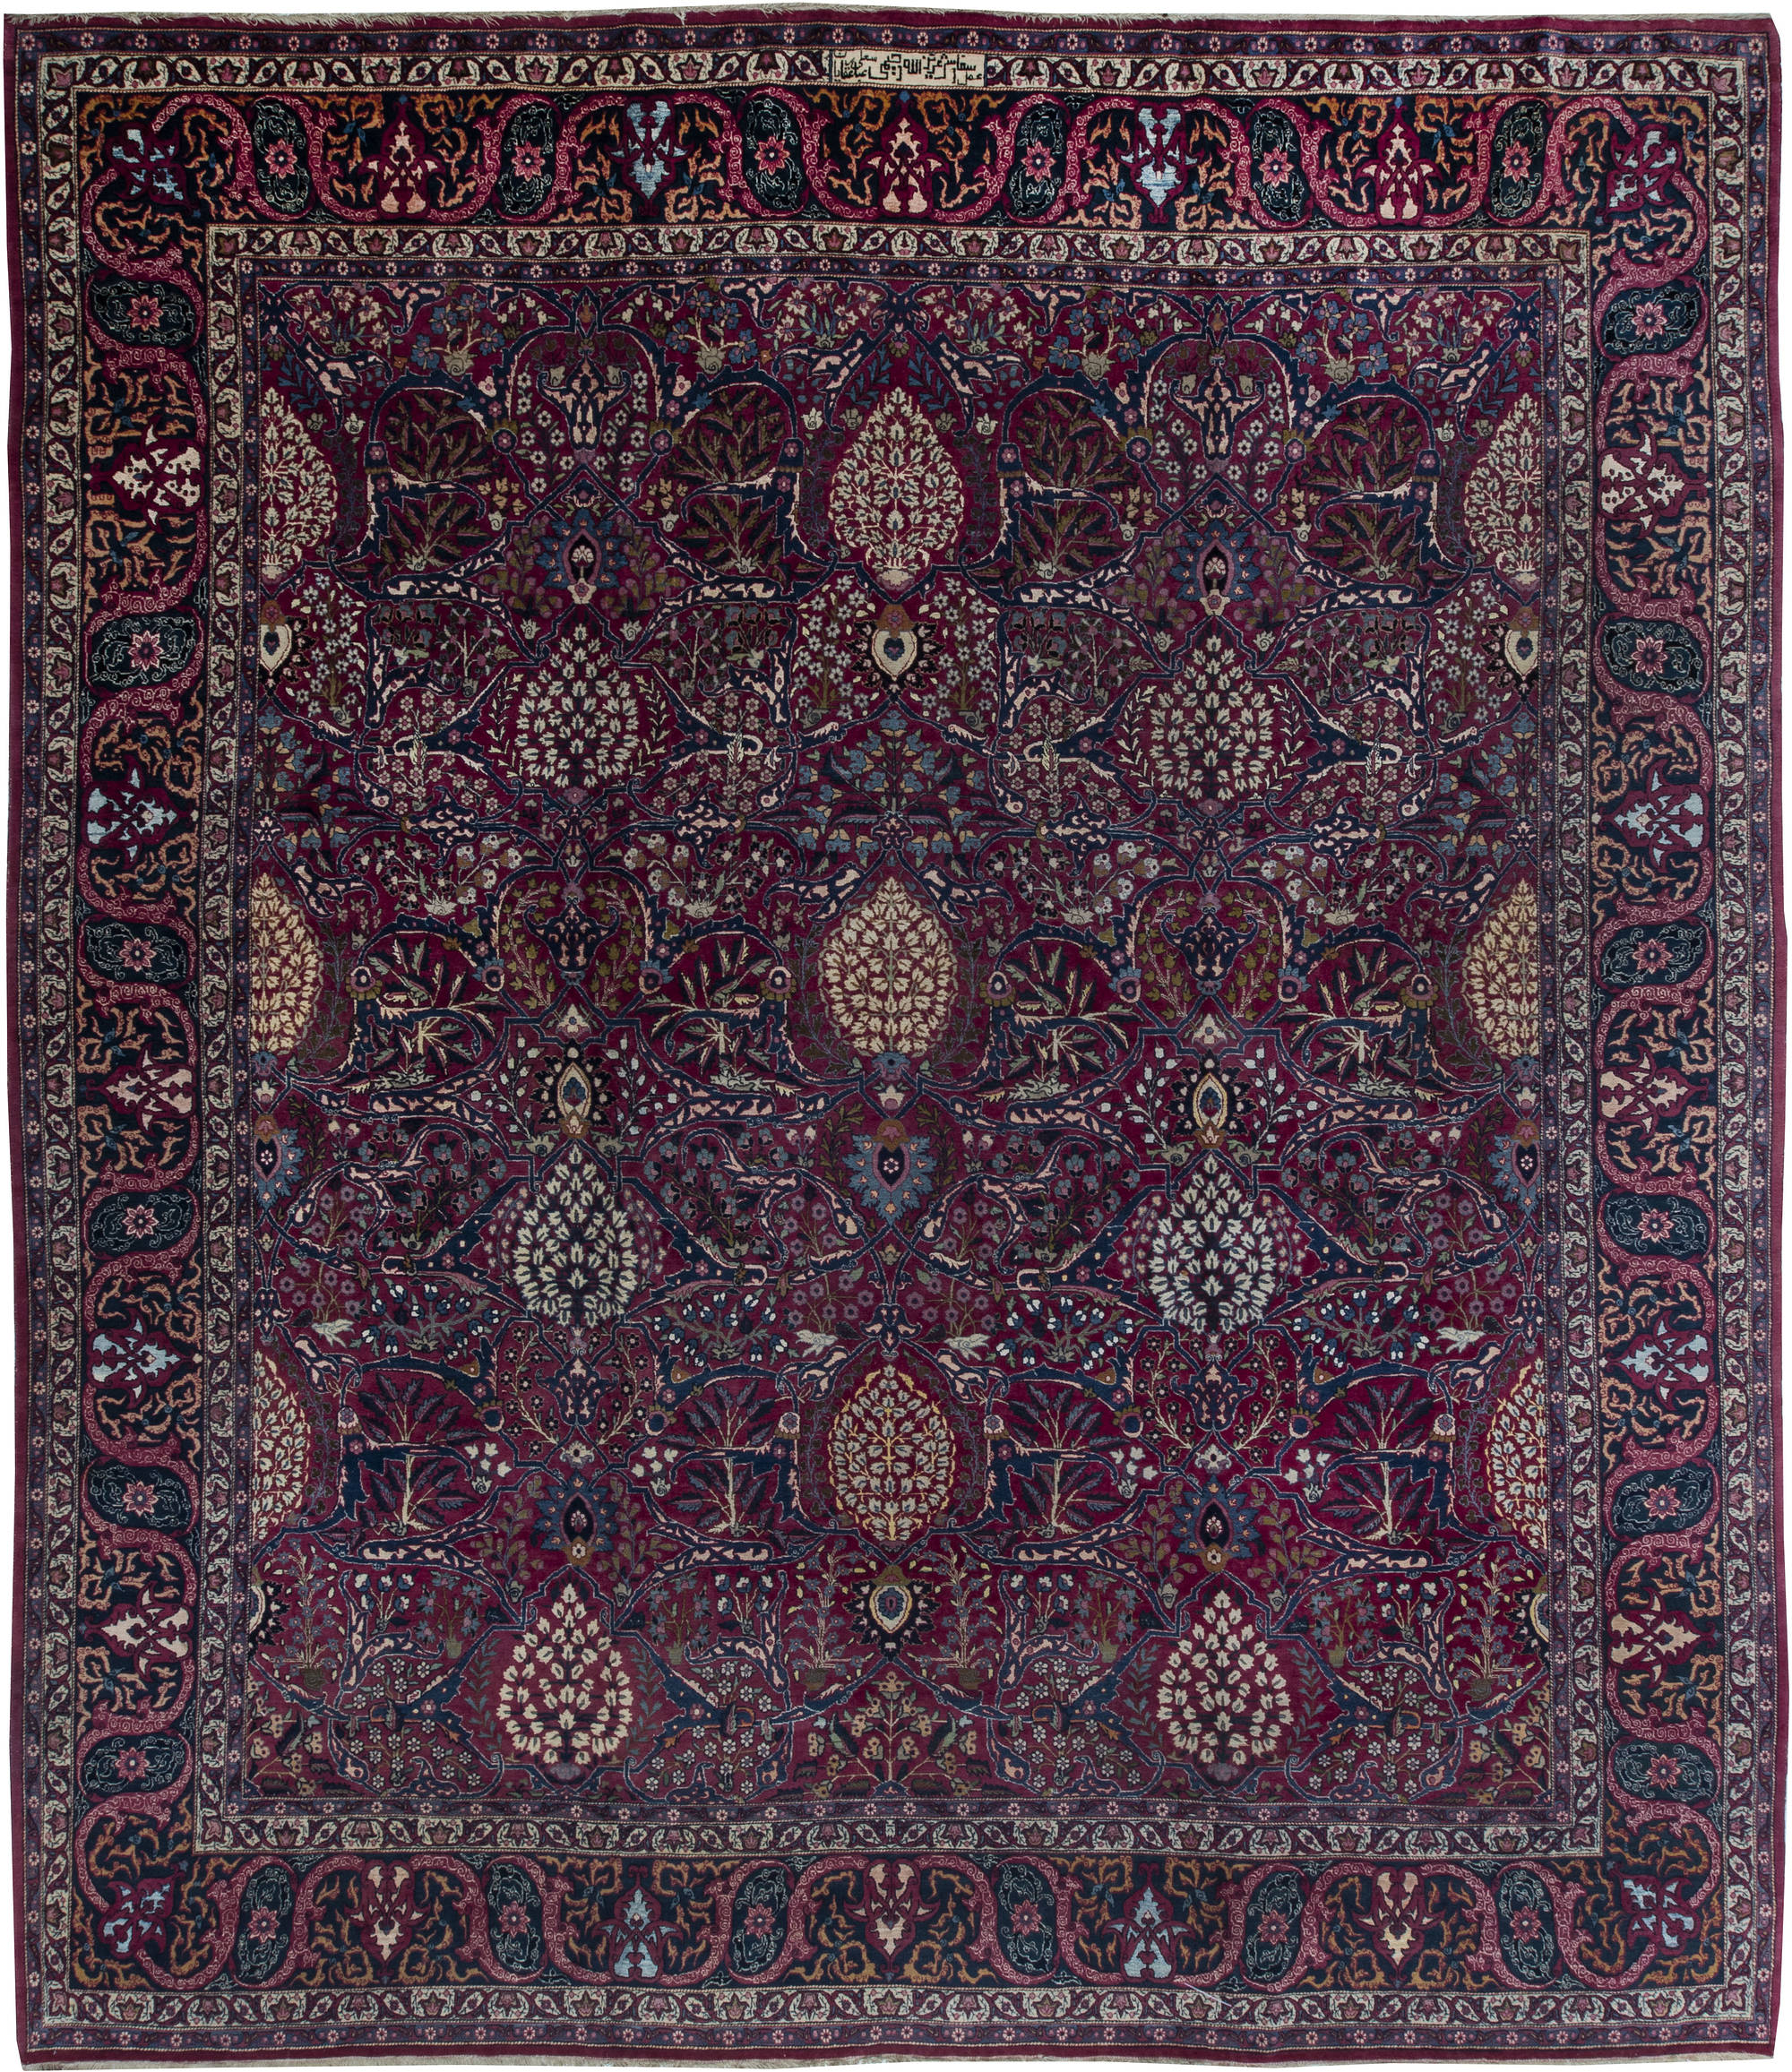 Antique Persian Tabriz Park Silk Carpet. BB6375 By Doris